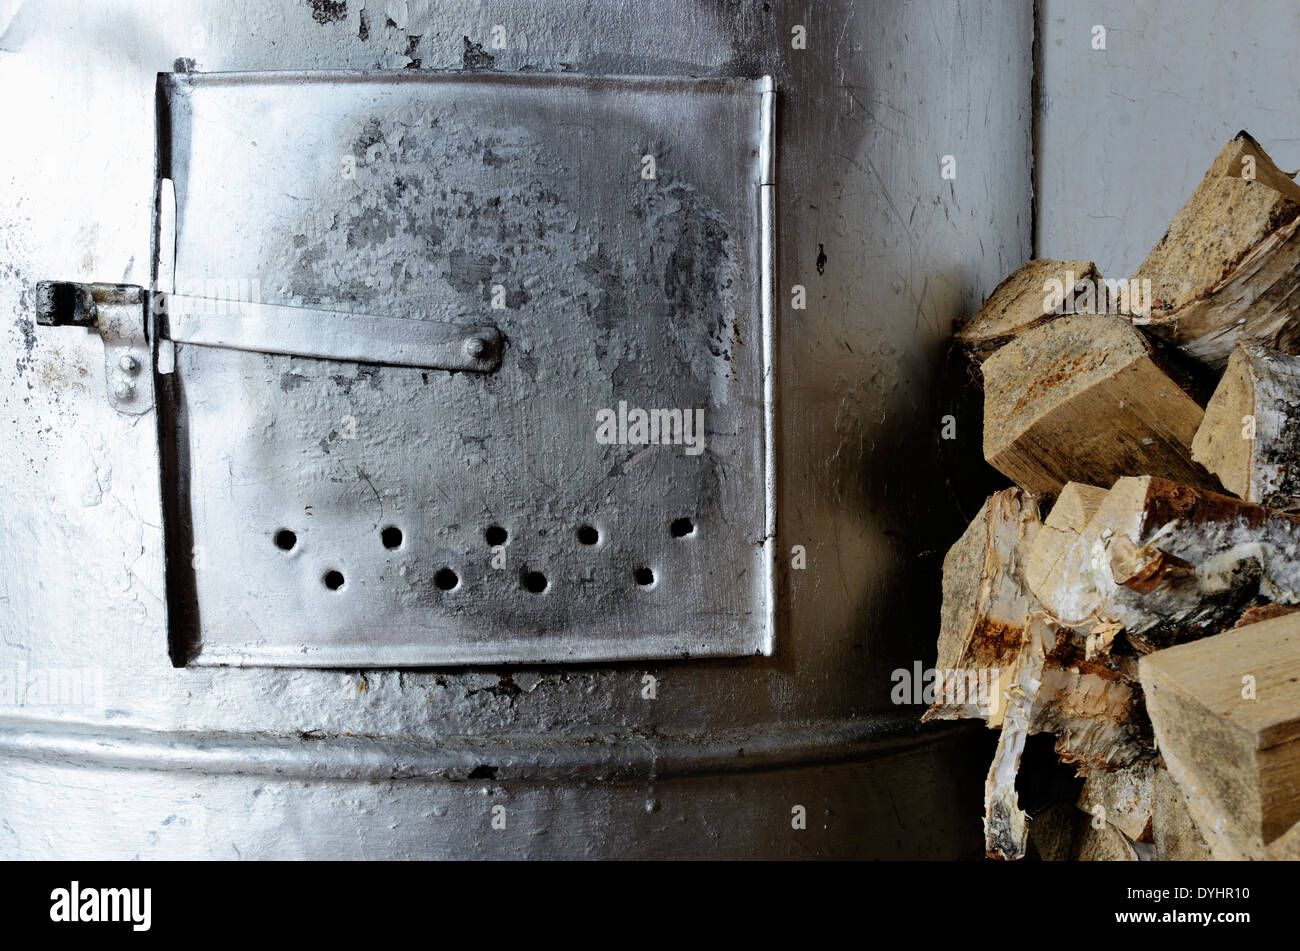 old stove and birch firewood, horizontal photo - Stock Image